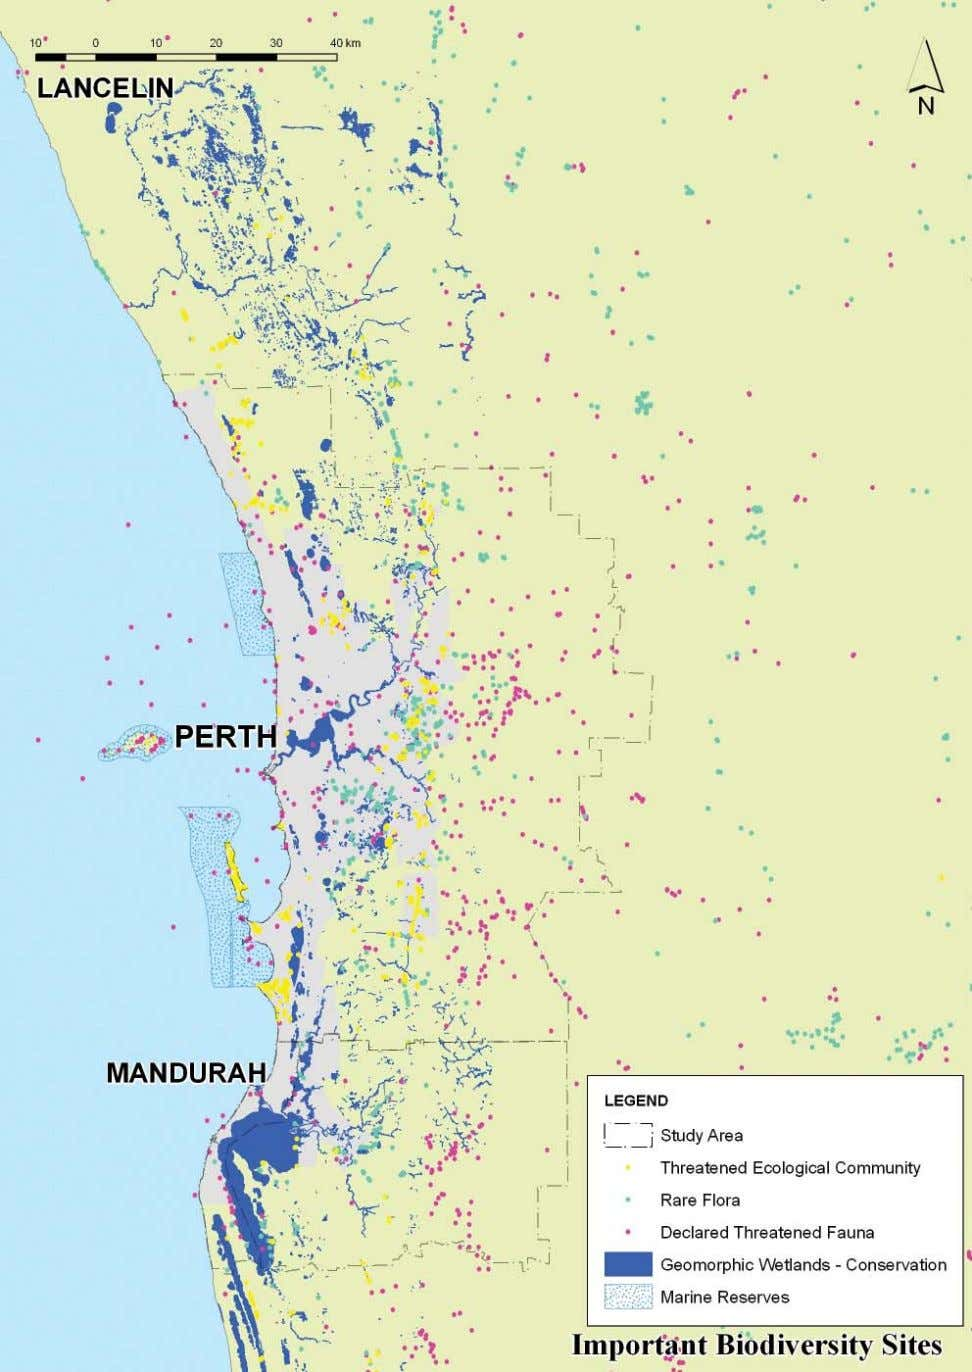 SITES OF HIGH IMPORTANCE TO BIODIVERSITY IN THE PERTH - MANDURAH REGION OPTIONS FOR OUR WATER